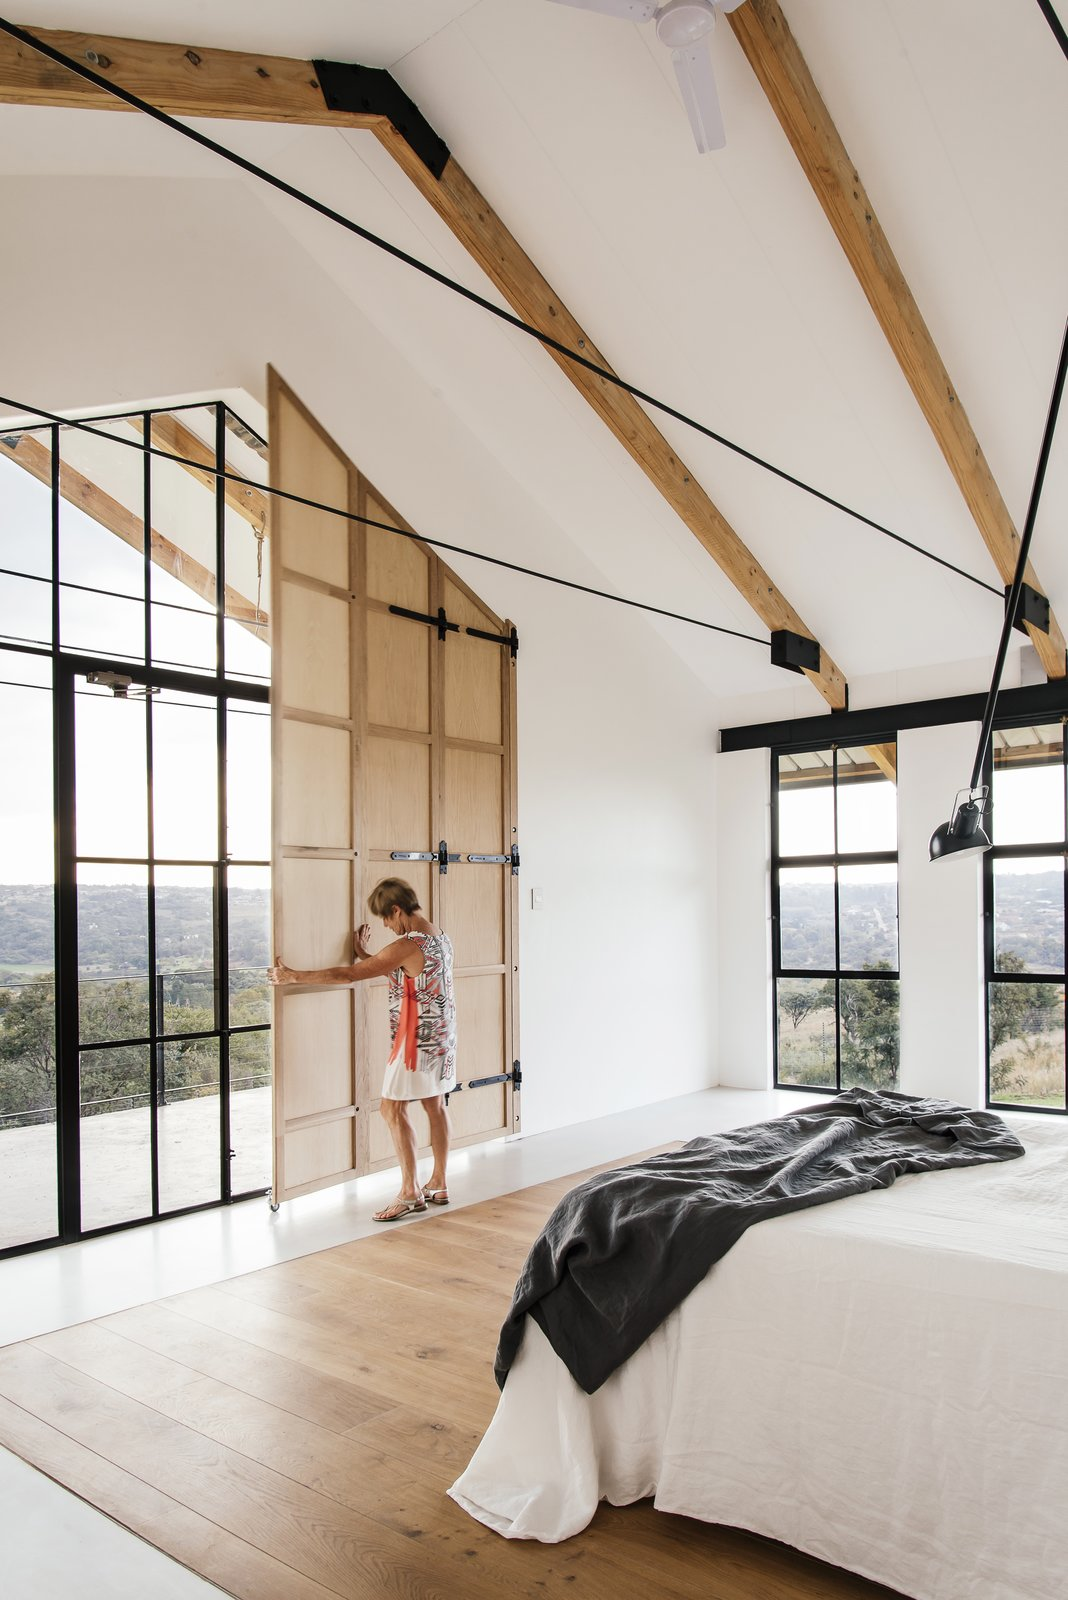 Photo 1 Of 50 In 50 Bright Ideas For Bedroom Ceiling Lighting From A South African Architect Designs An Off Grid Modern Home For Her Parents Dwell